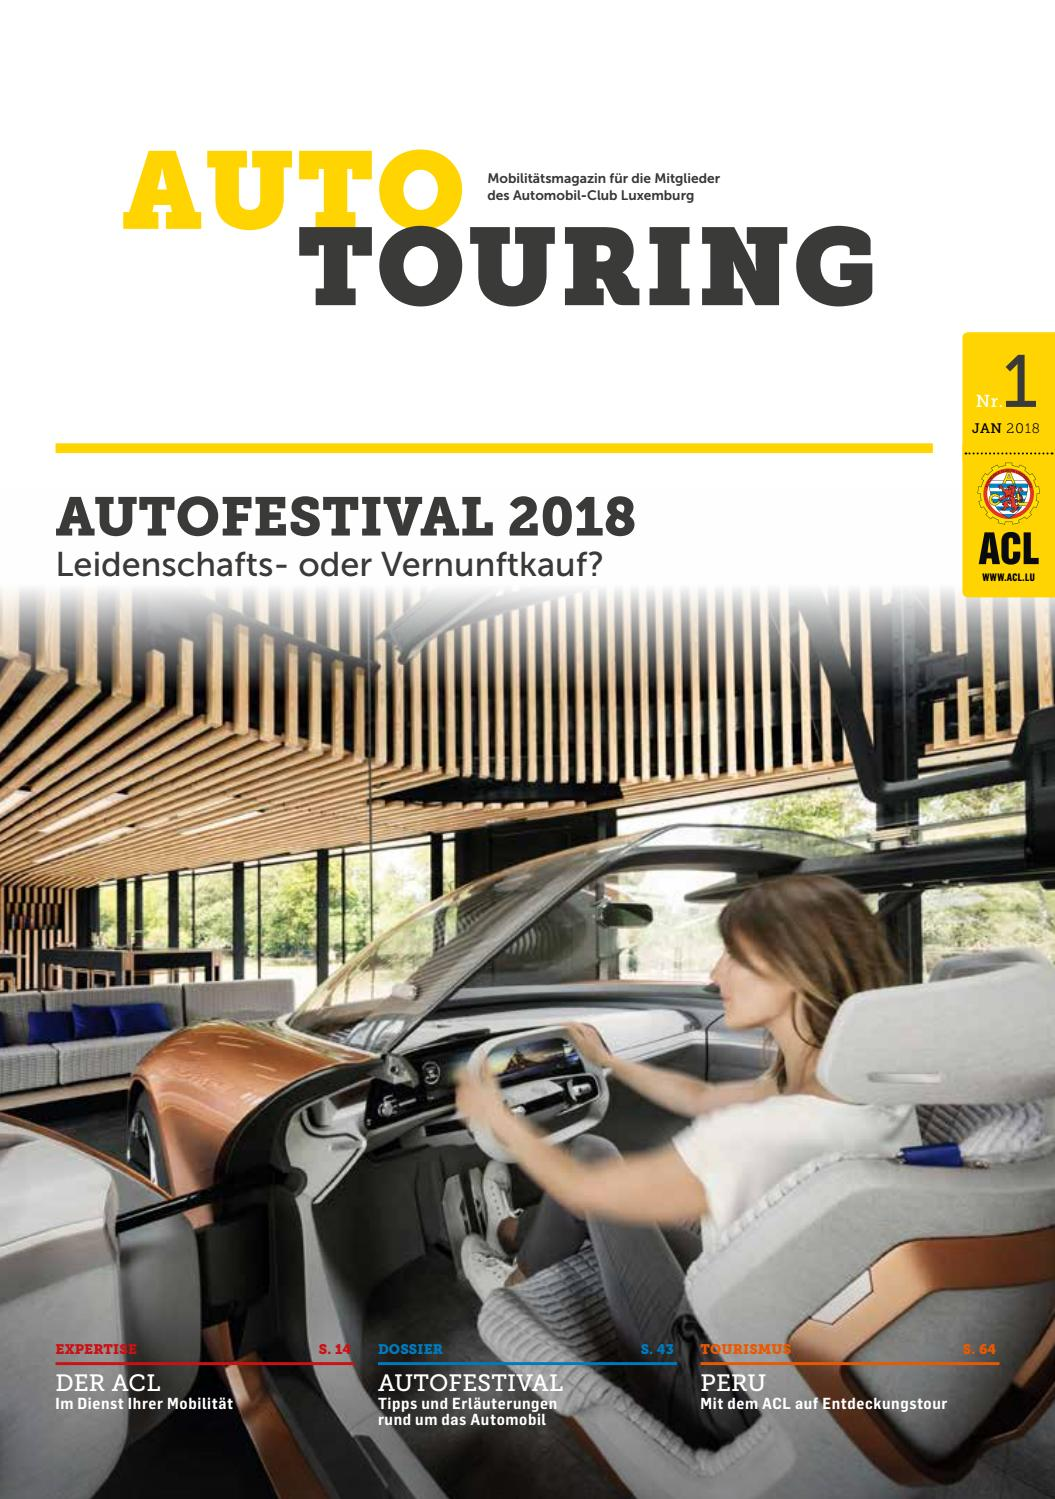 Autotouring - Januar 2018 by ACL - issuu